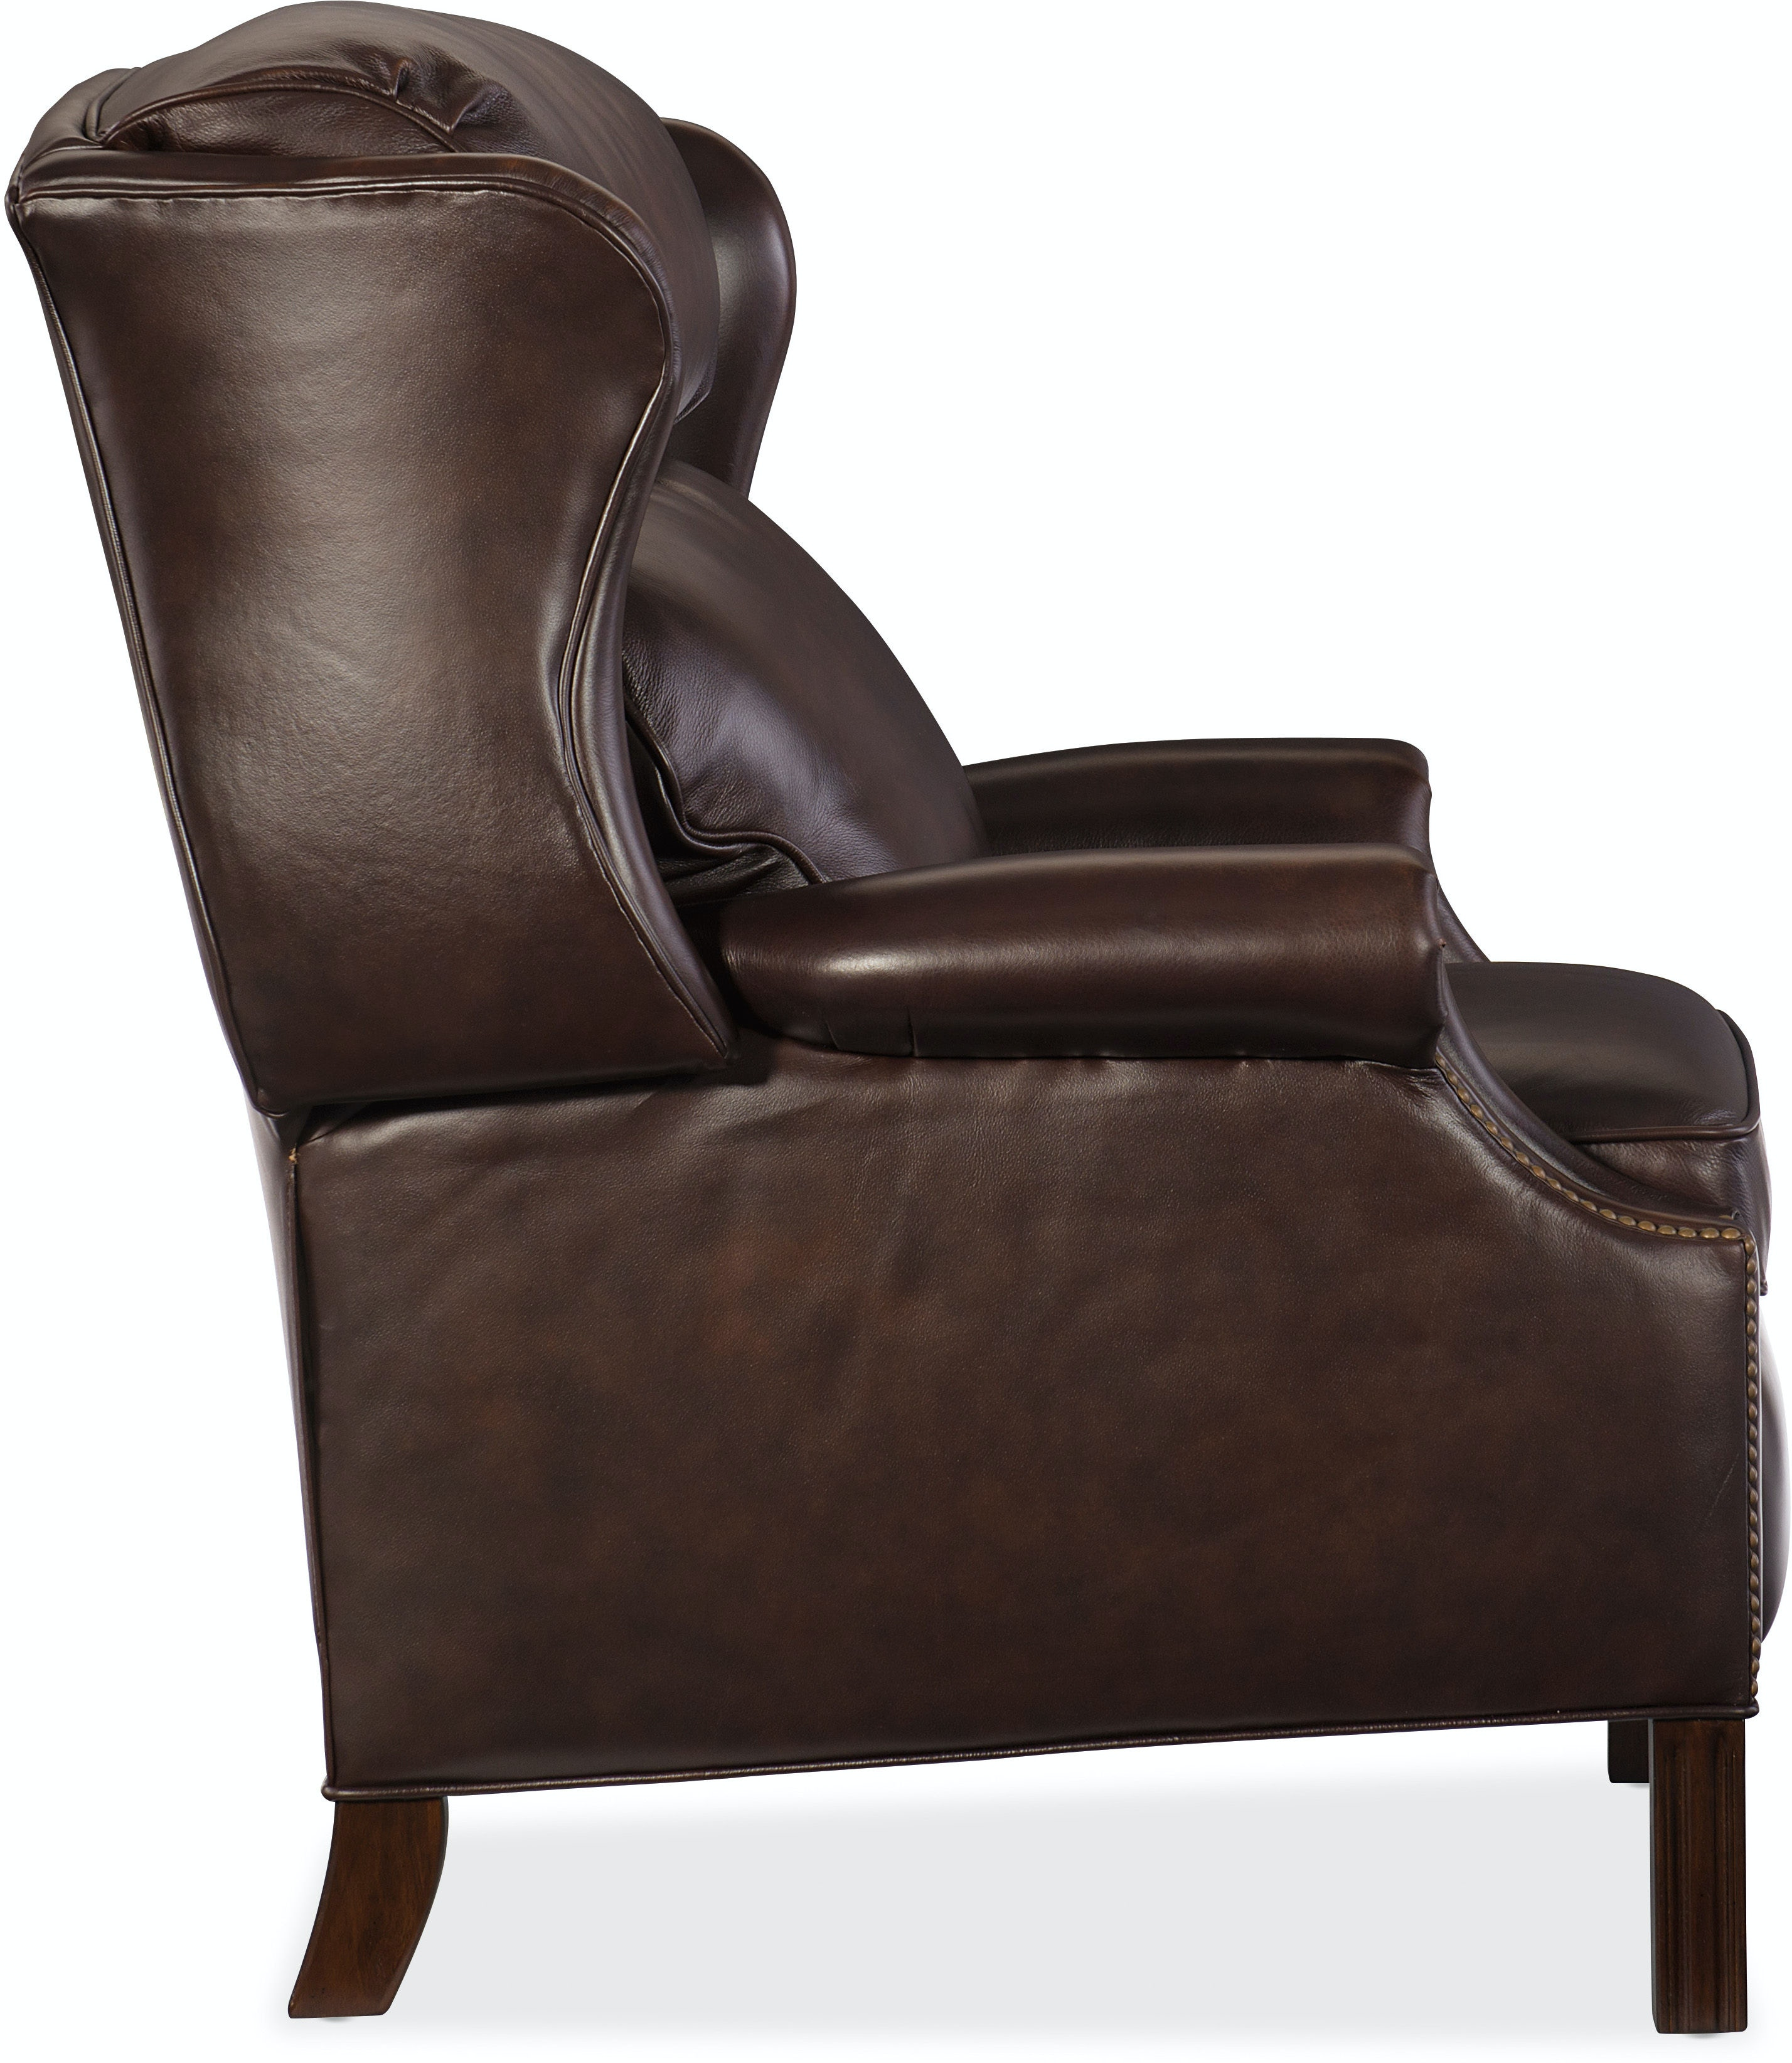 Magnificent Hooker Furniture Living Room Finley Recliner Chair Rc214 203 Evergreenethics Interior Chair Design Evergreenethicsorg